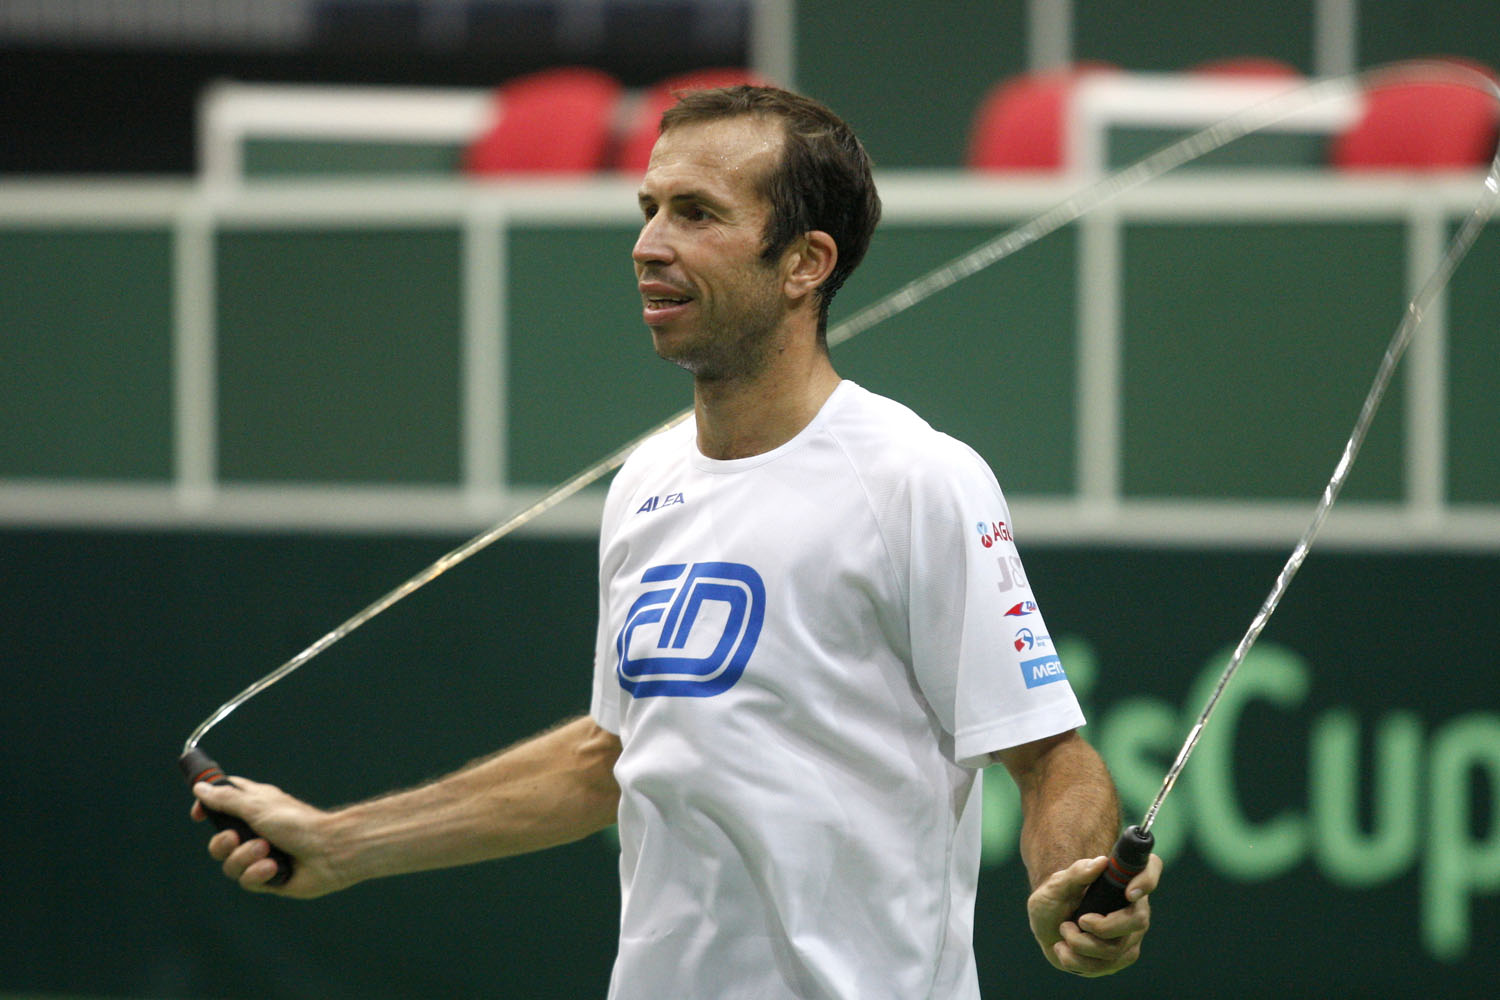 Radek Stepanek works out during a training session for the Davis Cup in Ostrava, Czech Republic.